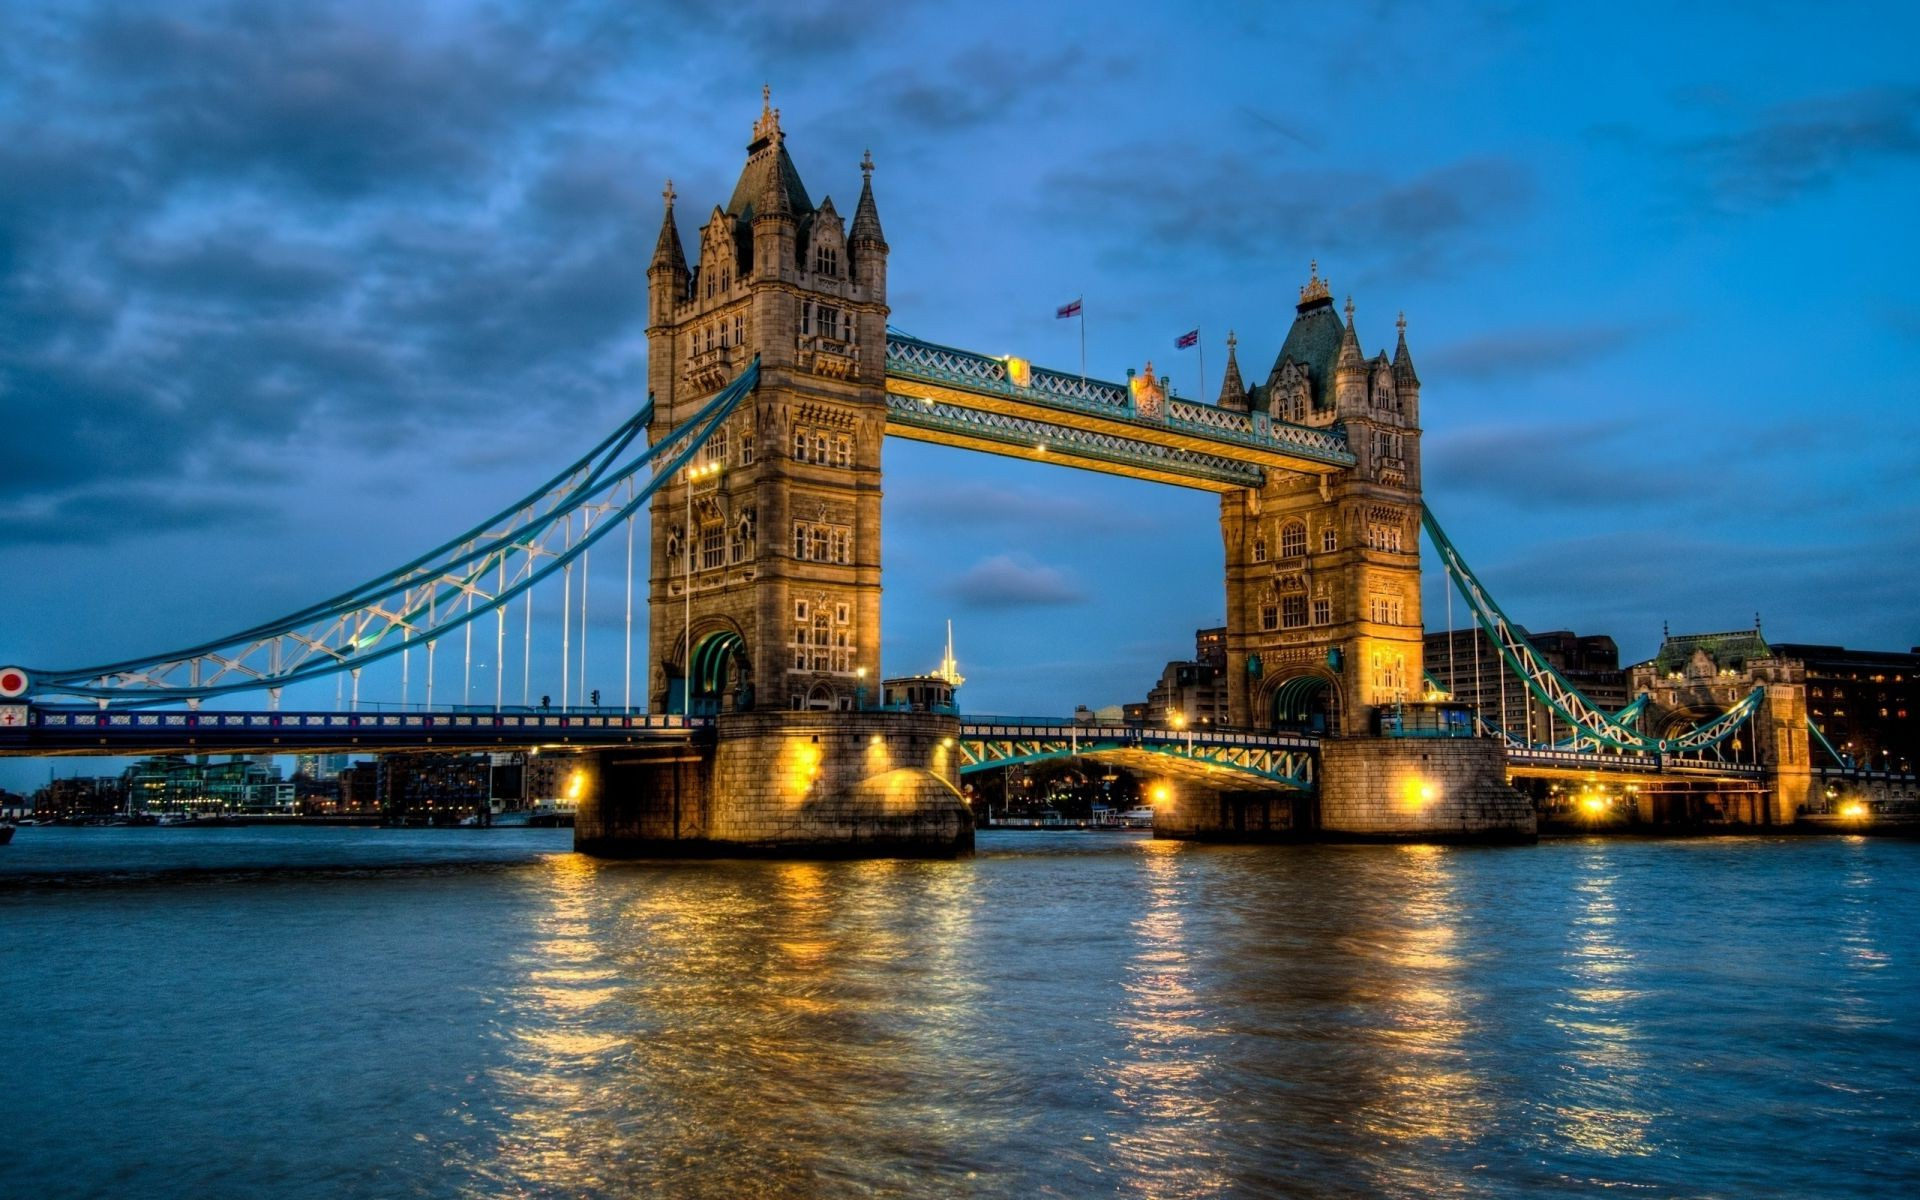 tower bridge лондон london uk англия England thames